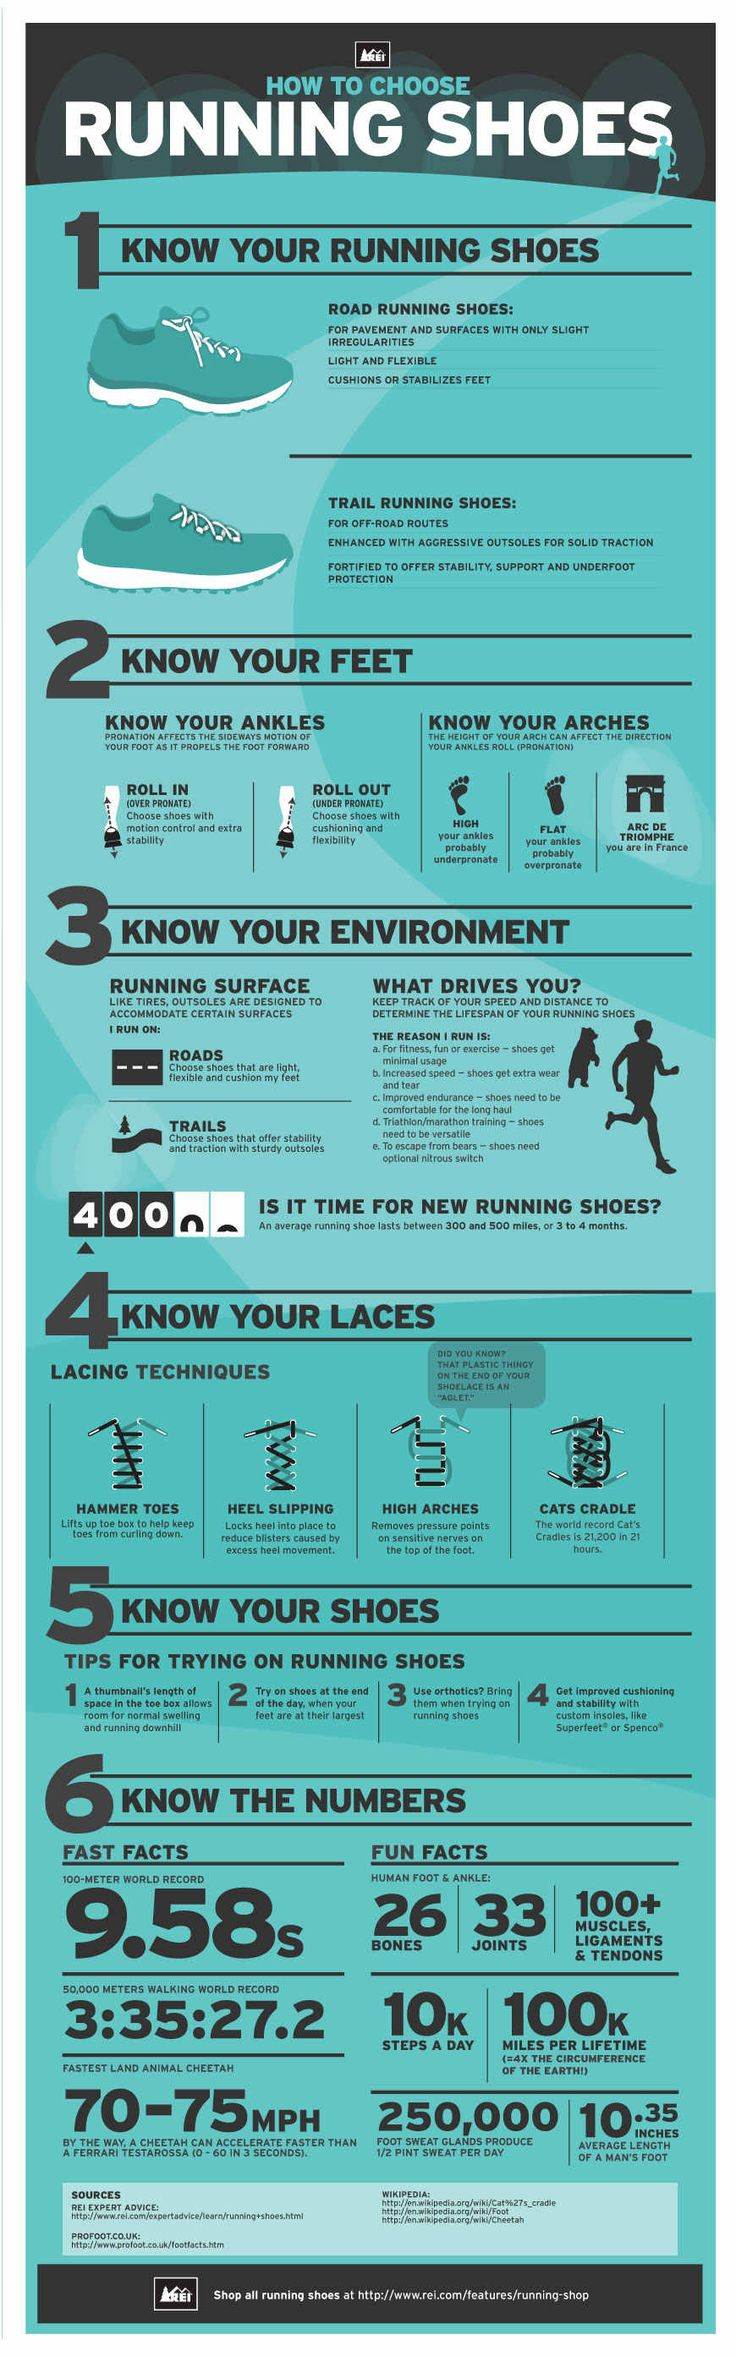 How to choose running shoes?!